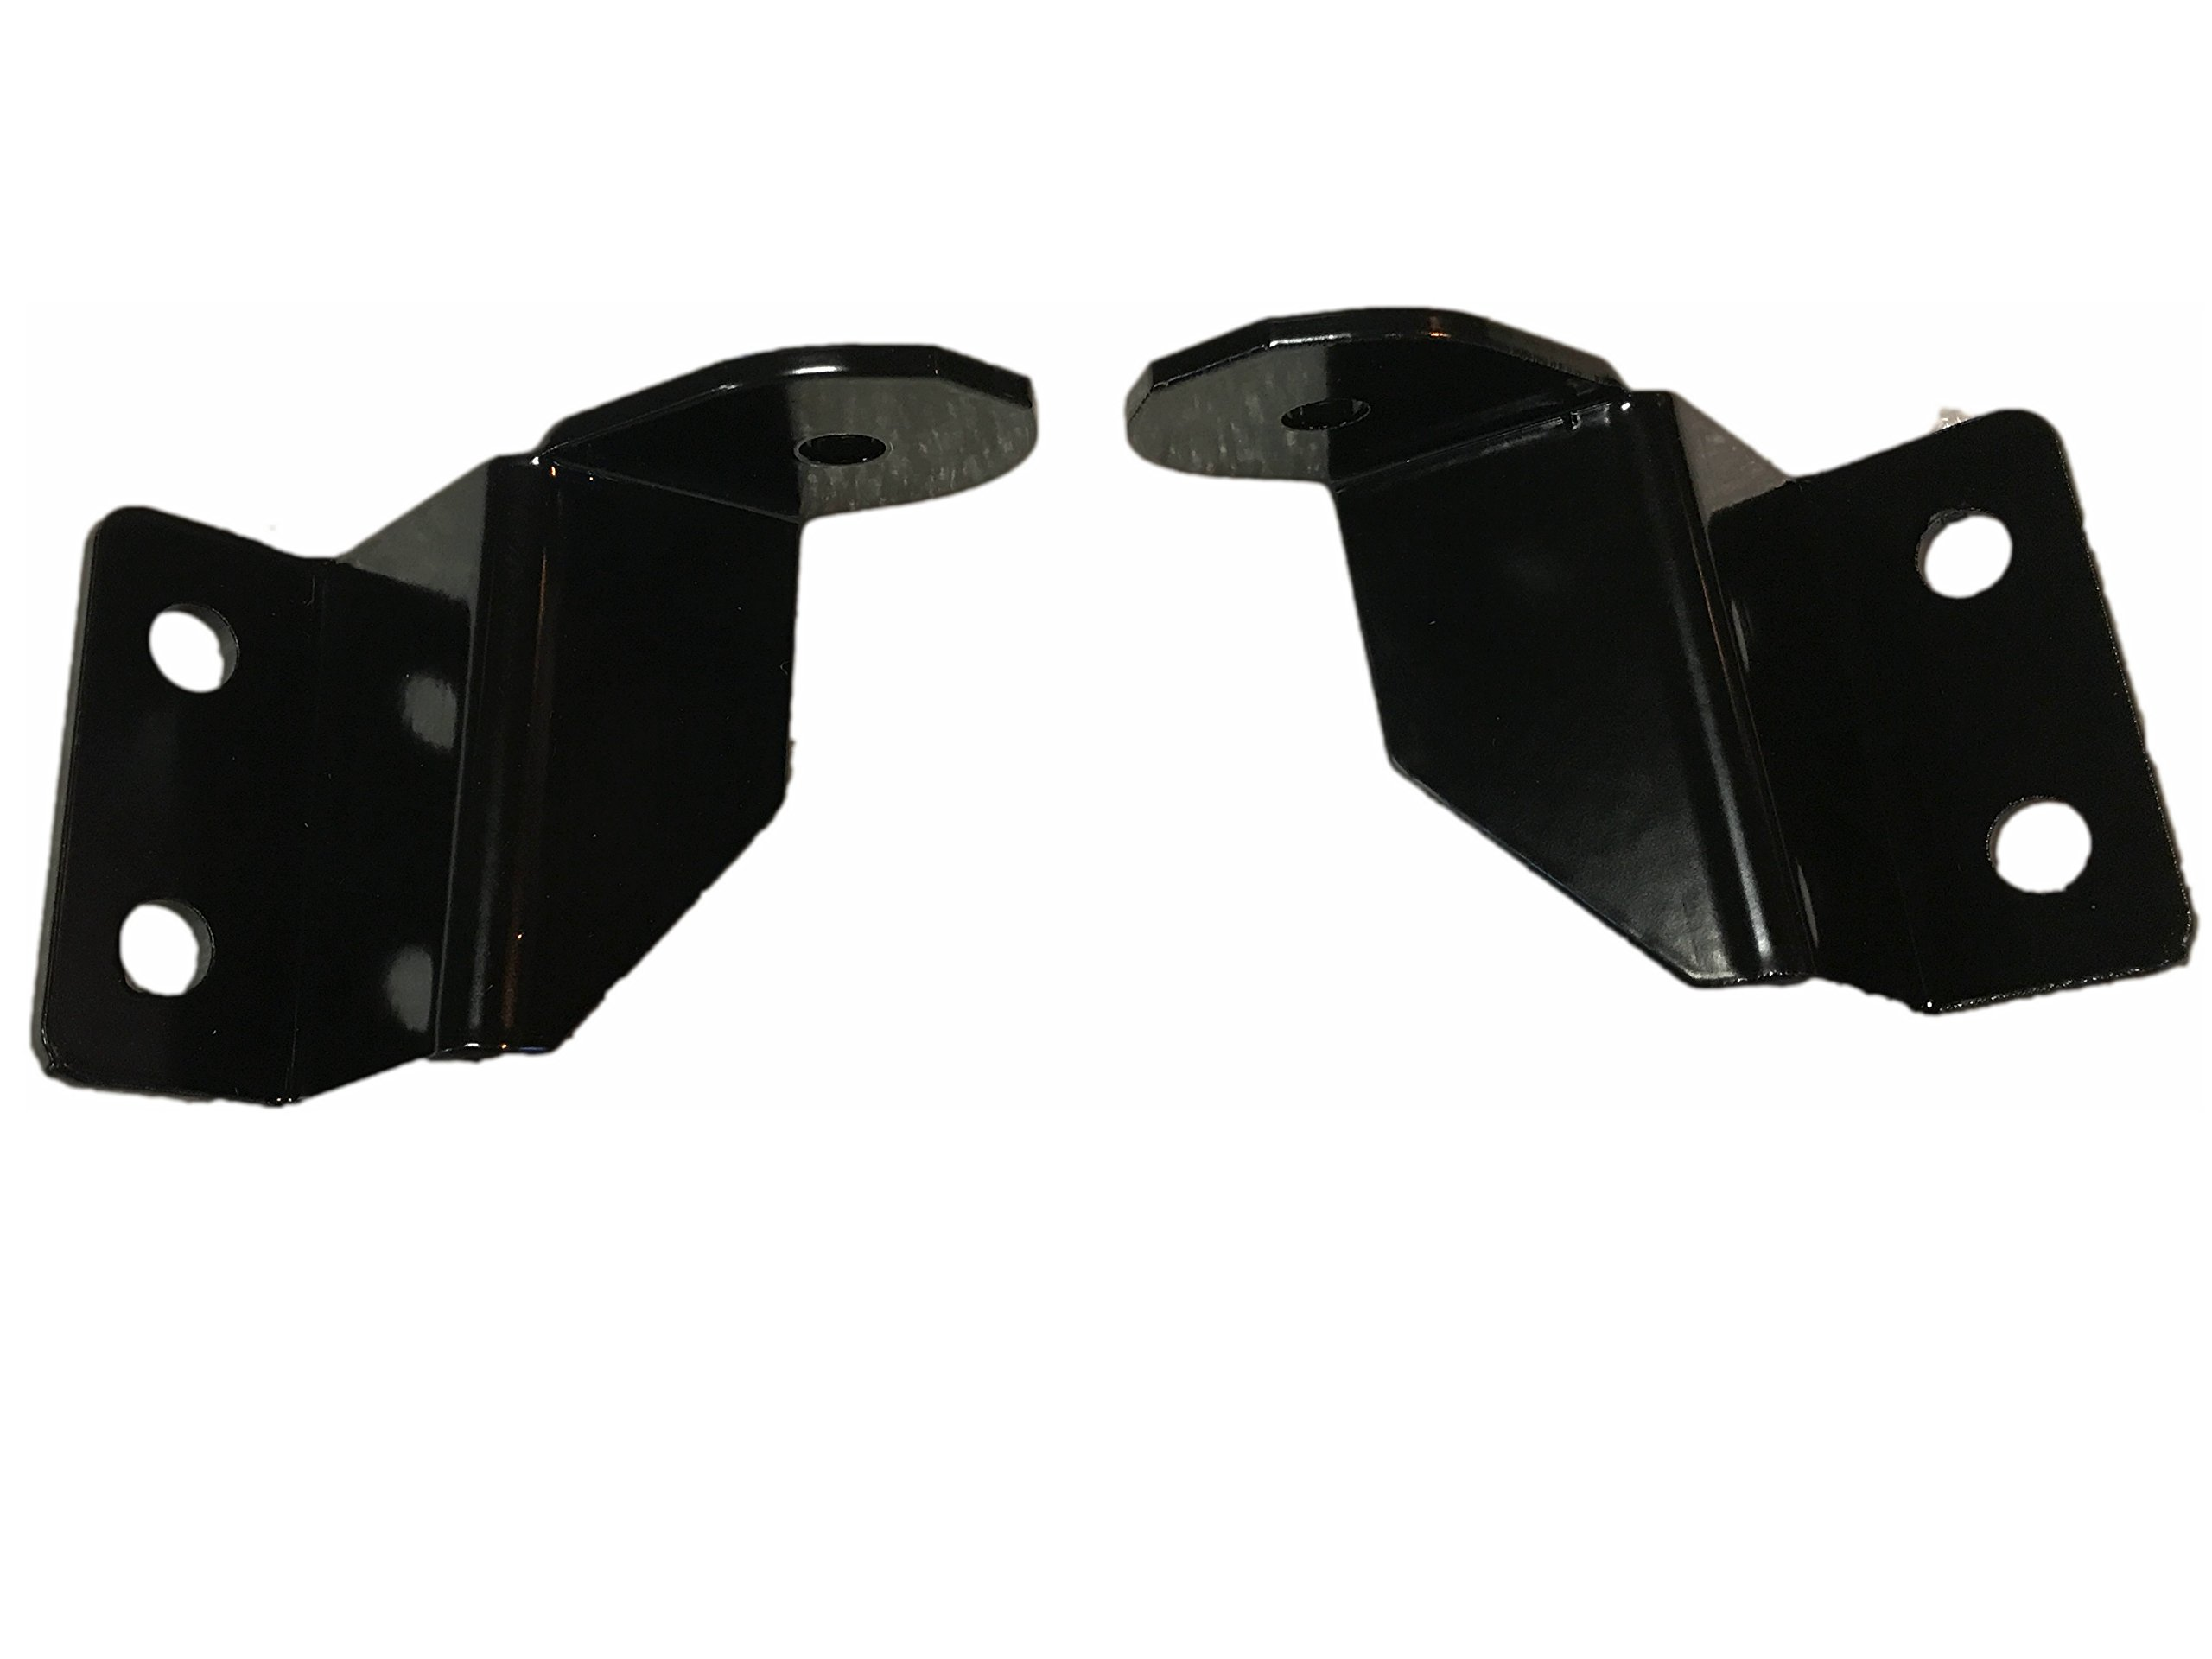 Polaris Ranger Light Brackets for the PRO-FIT cage